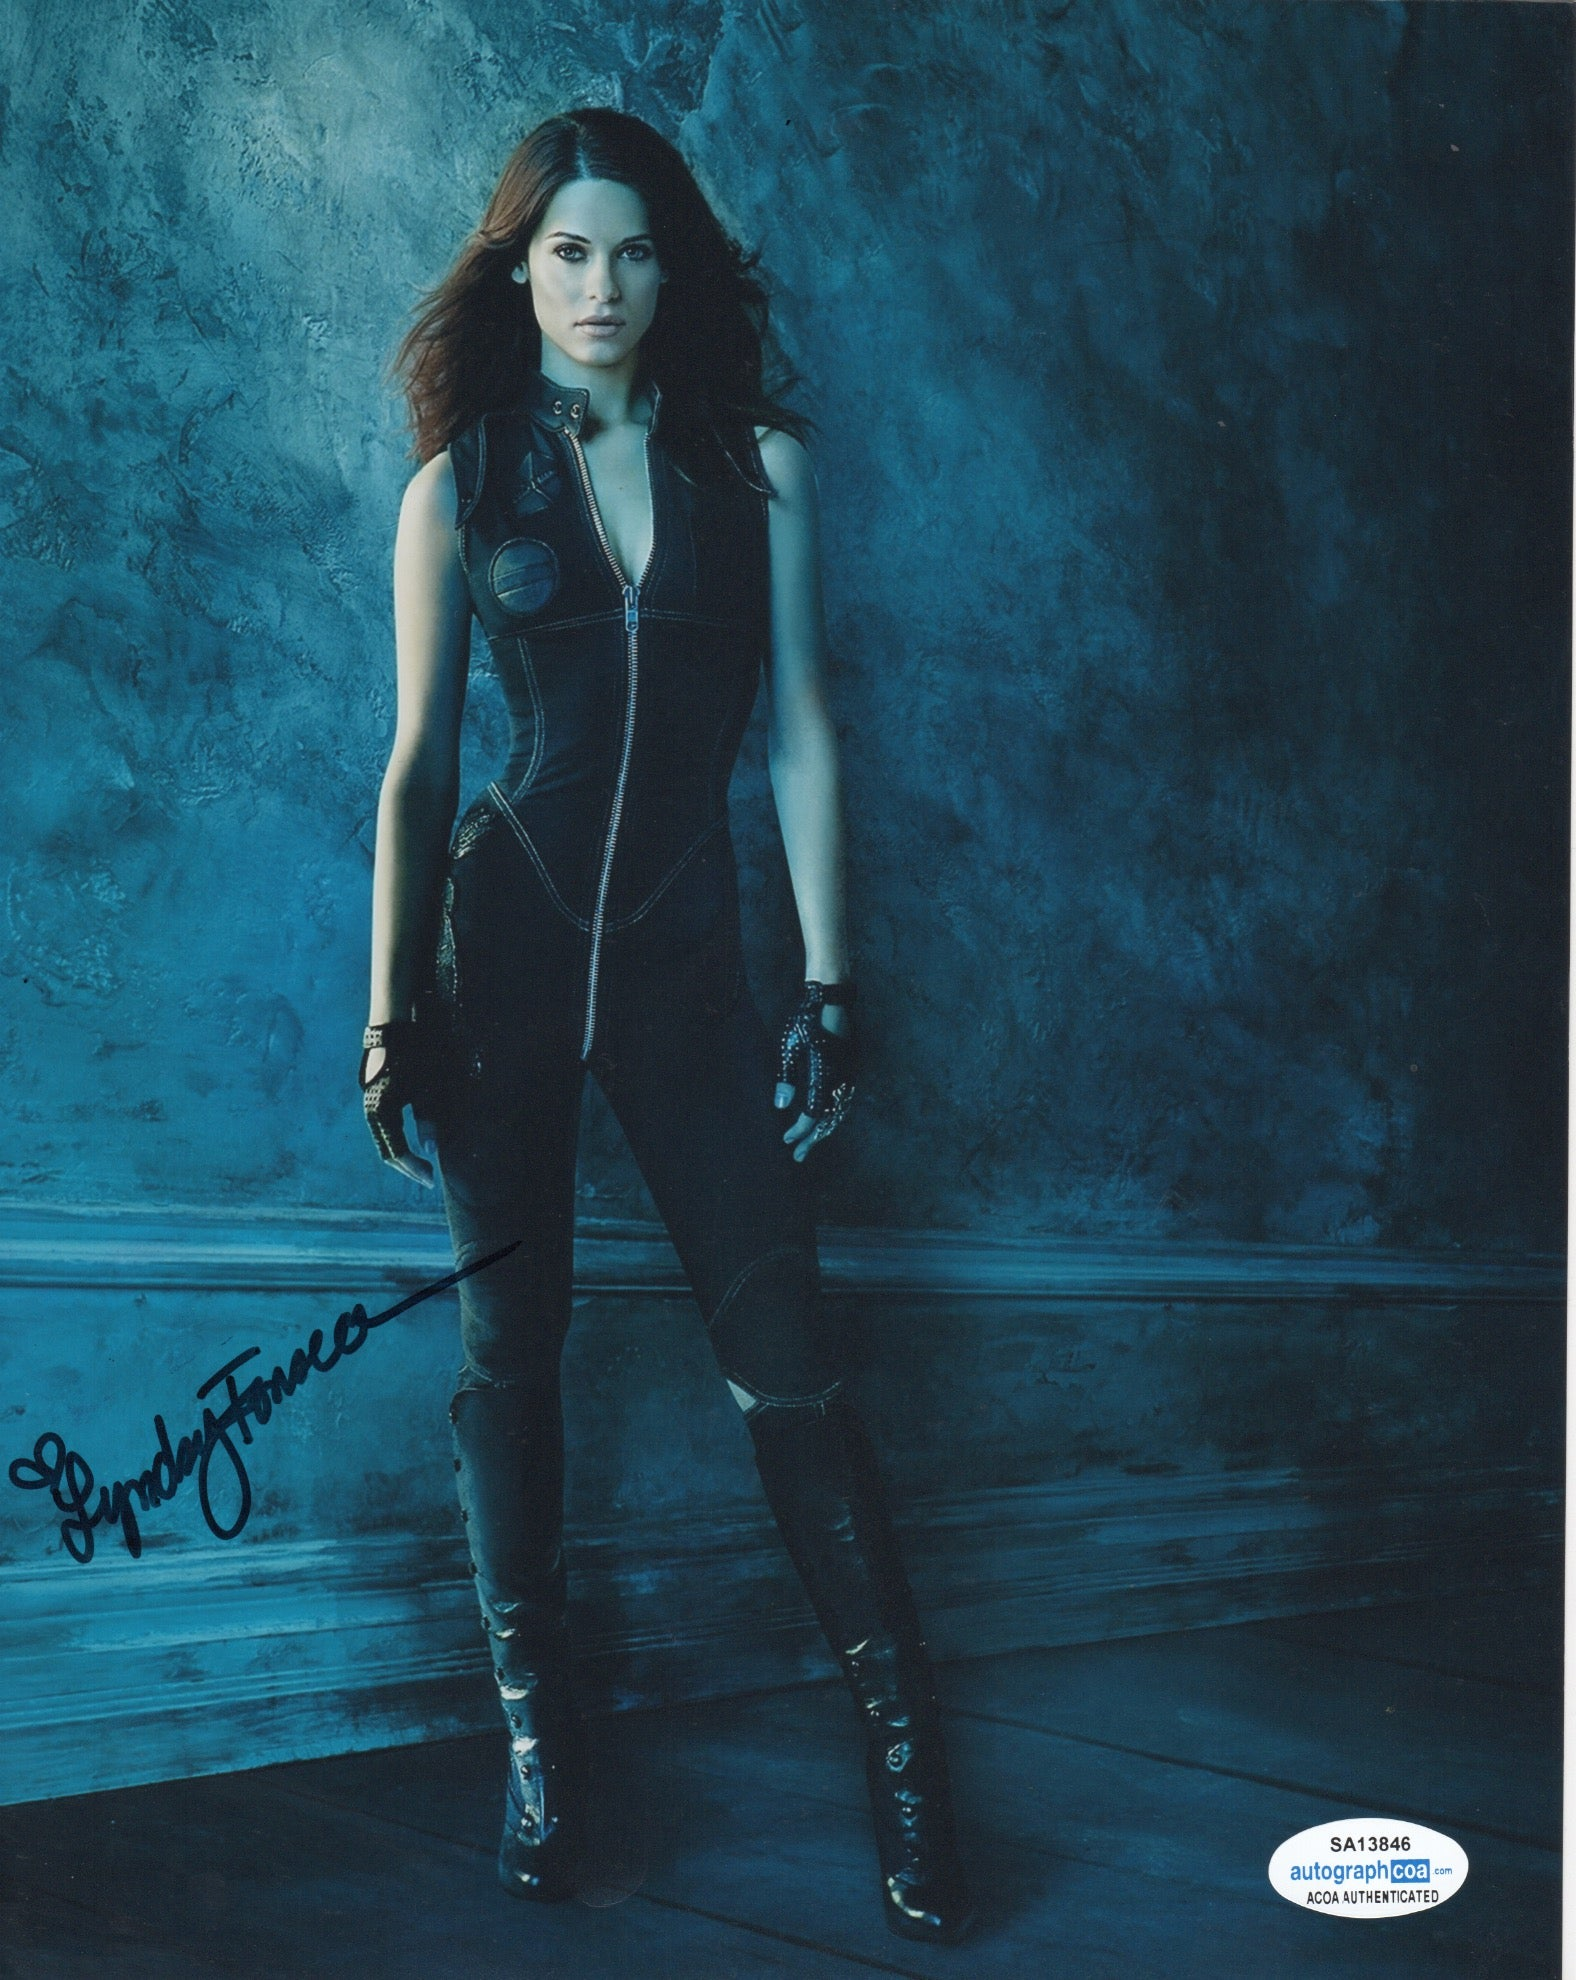 Lyndsy Fonseca Sexy Nikita Signed Autograph 8x10 Photo - Outlaw Hobbies Authentic Autographs